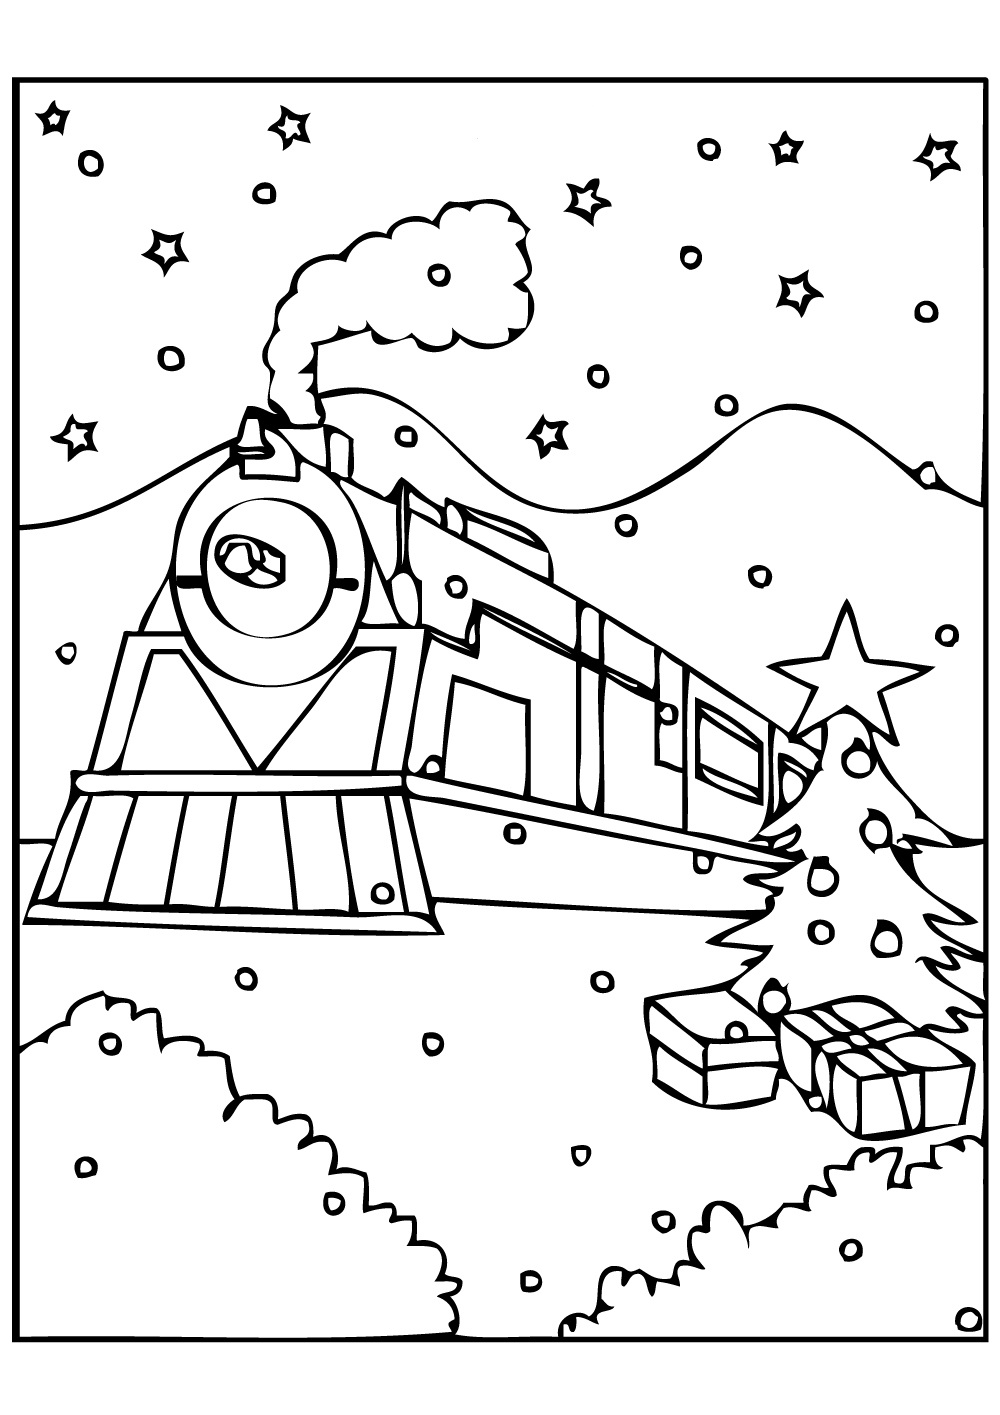 train ticket coloring pages - photo#30